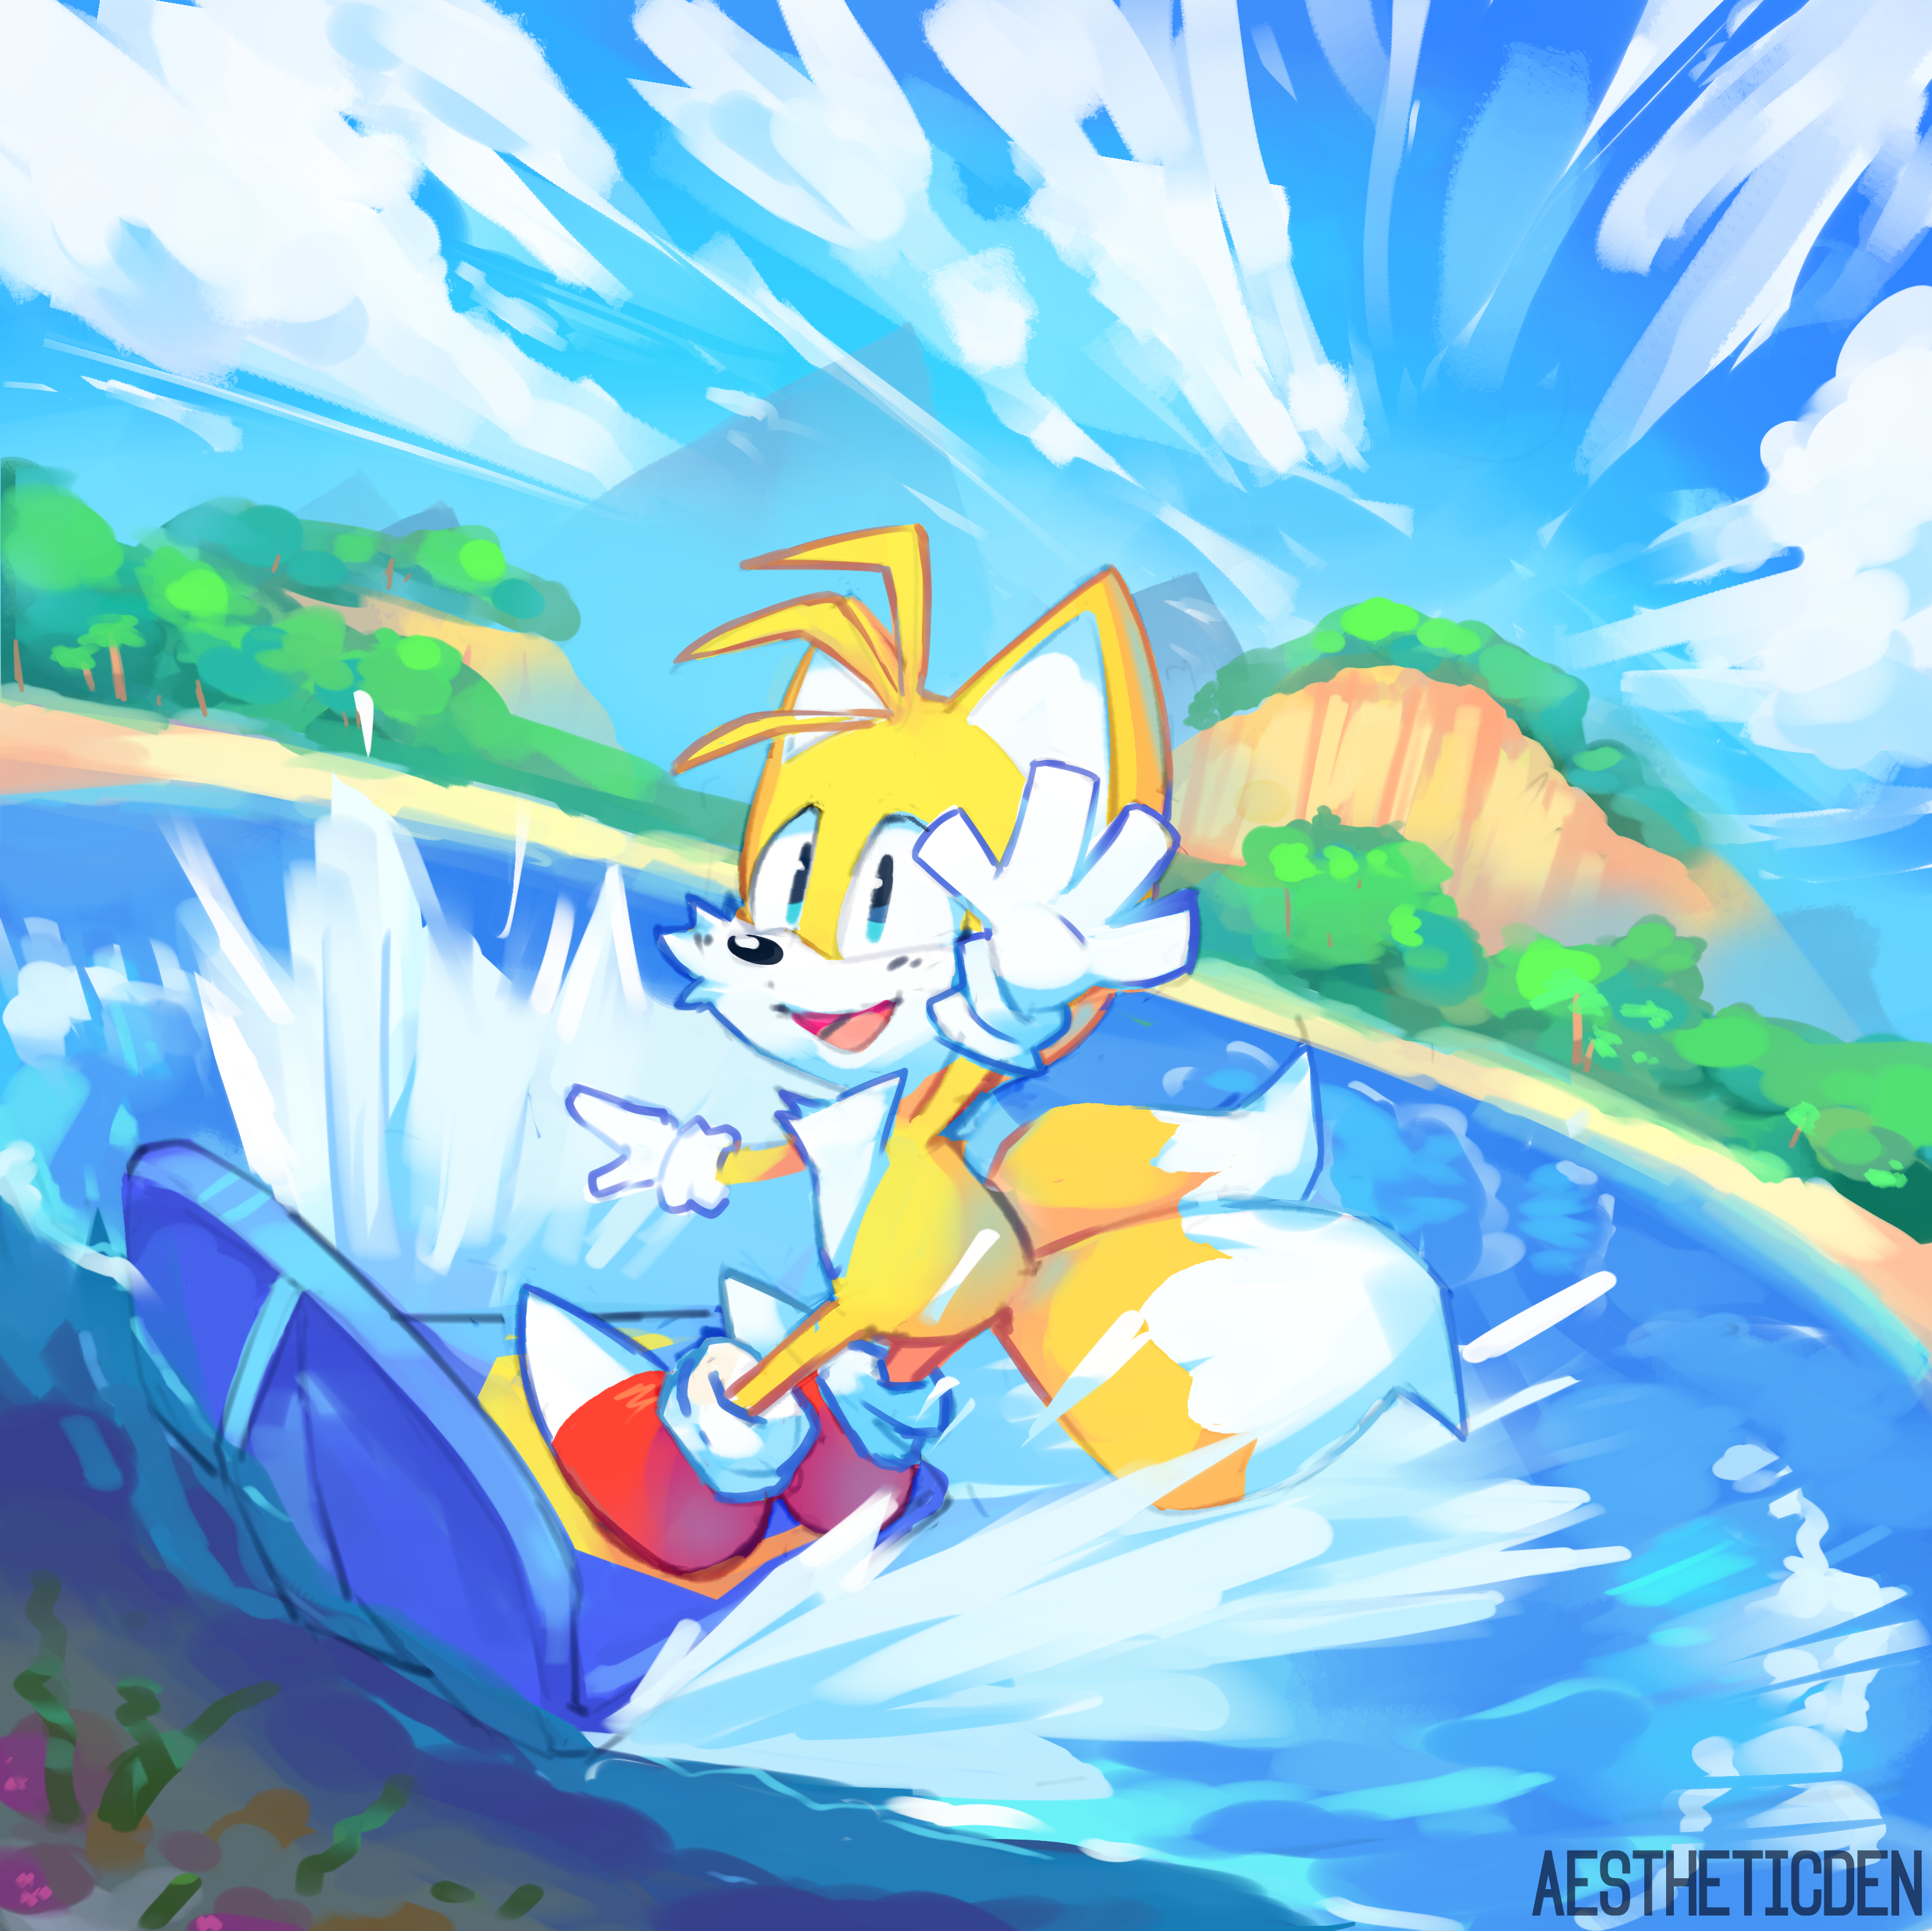 Surfing along the clouds!